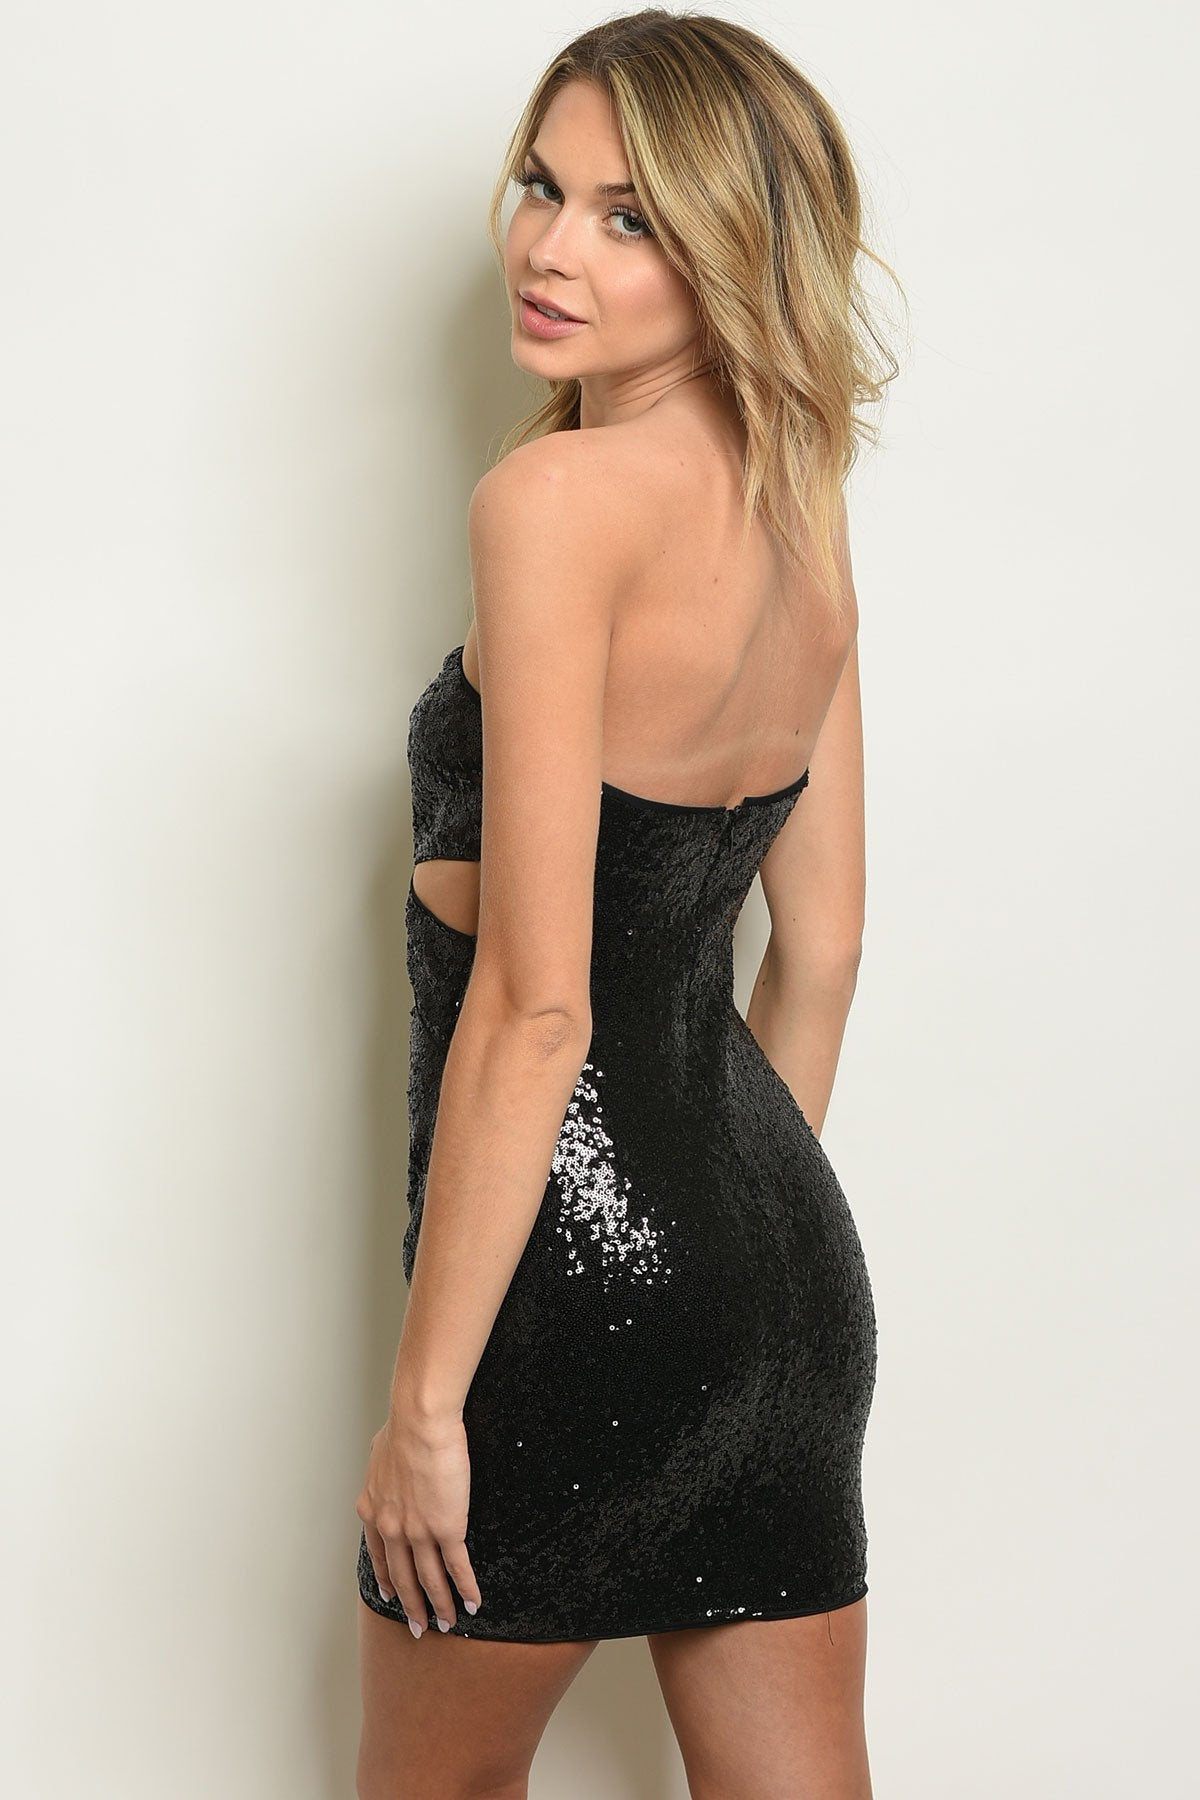 Black Gorgeous W/ Sequins Dress - BrandsGuru